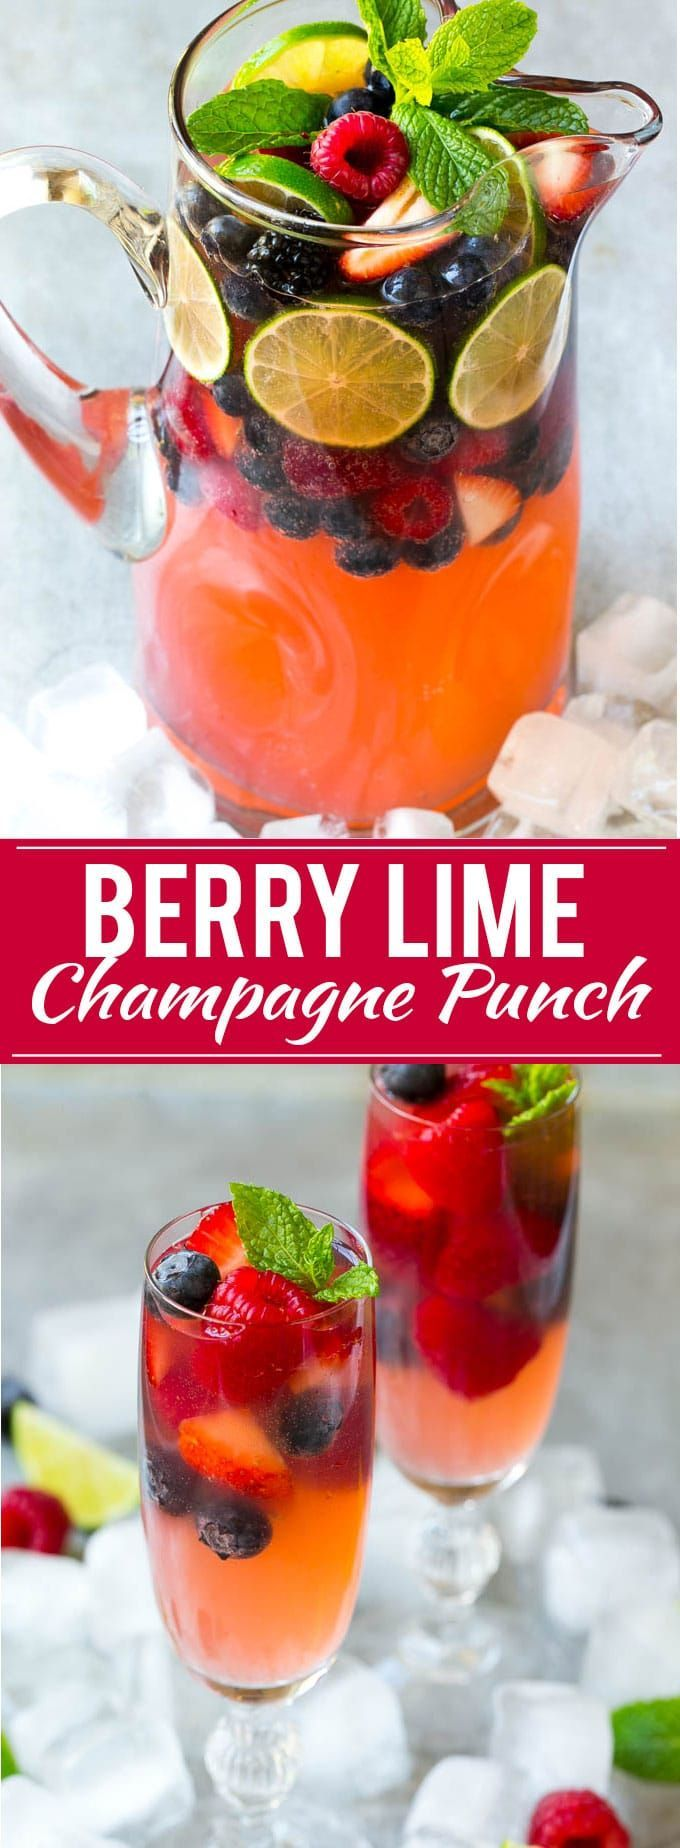 Delicious berry champagne punch recipe! http://juicerblendercenter.com/choosing-the-best-masticating-juicer/